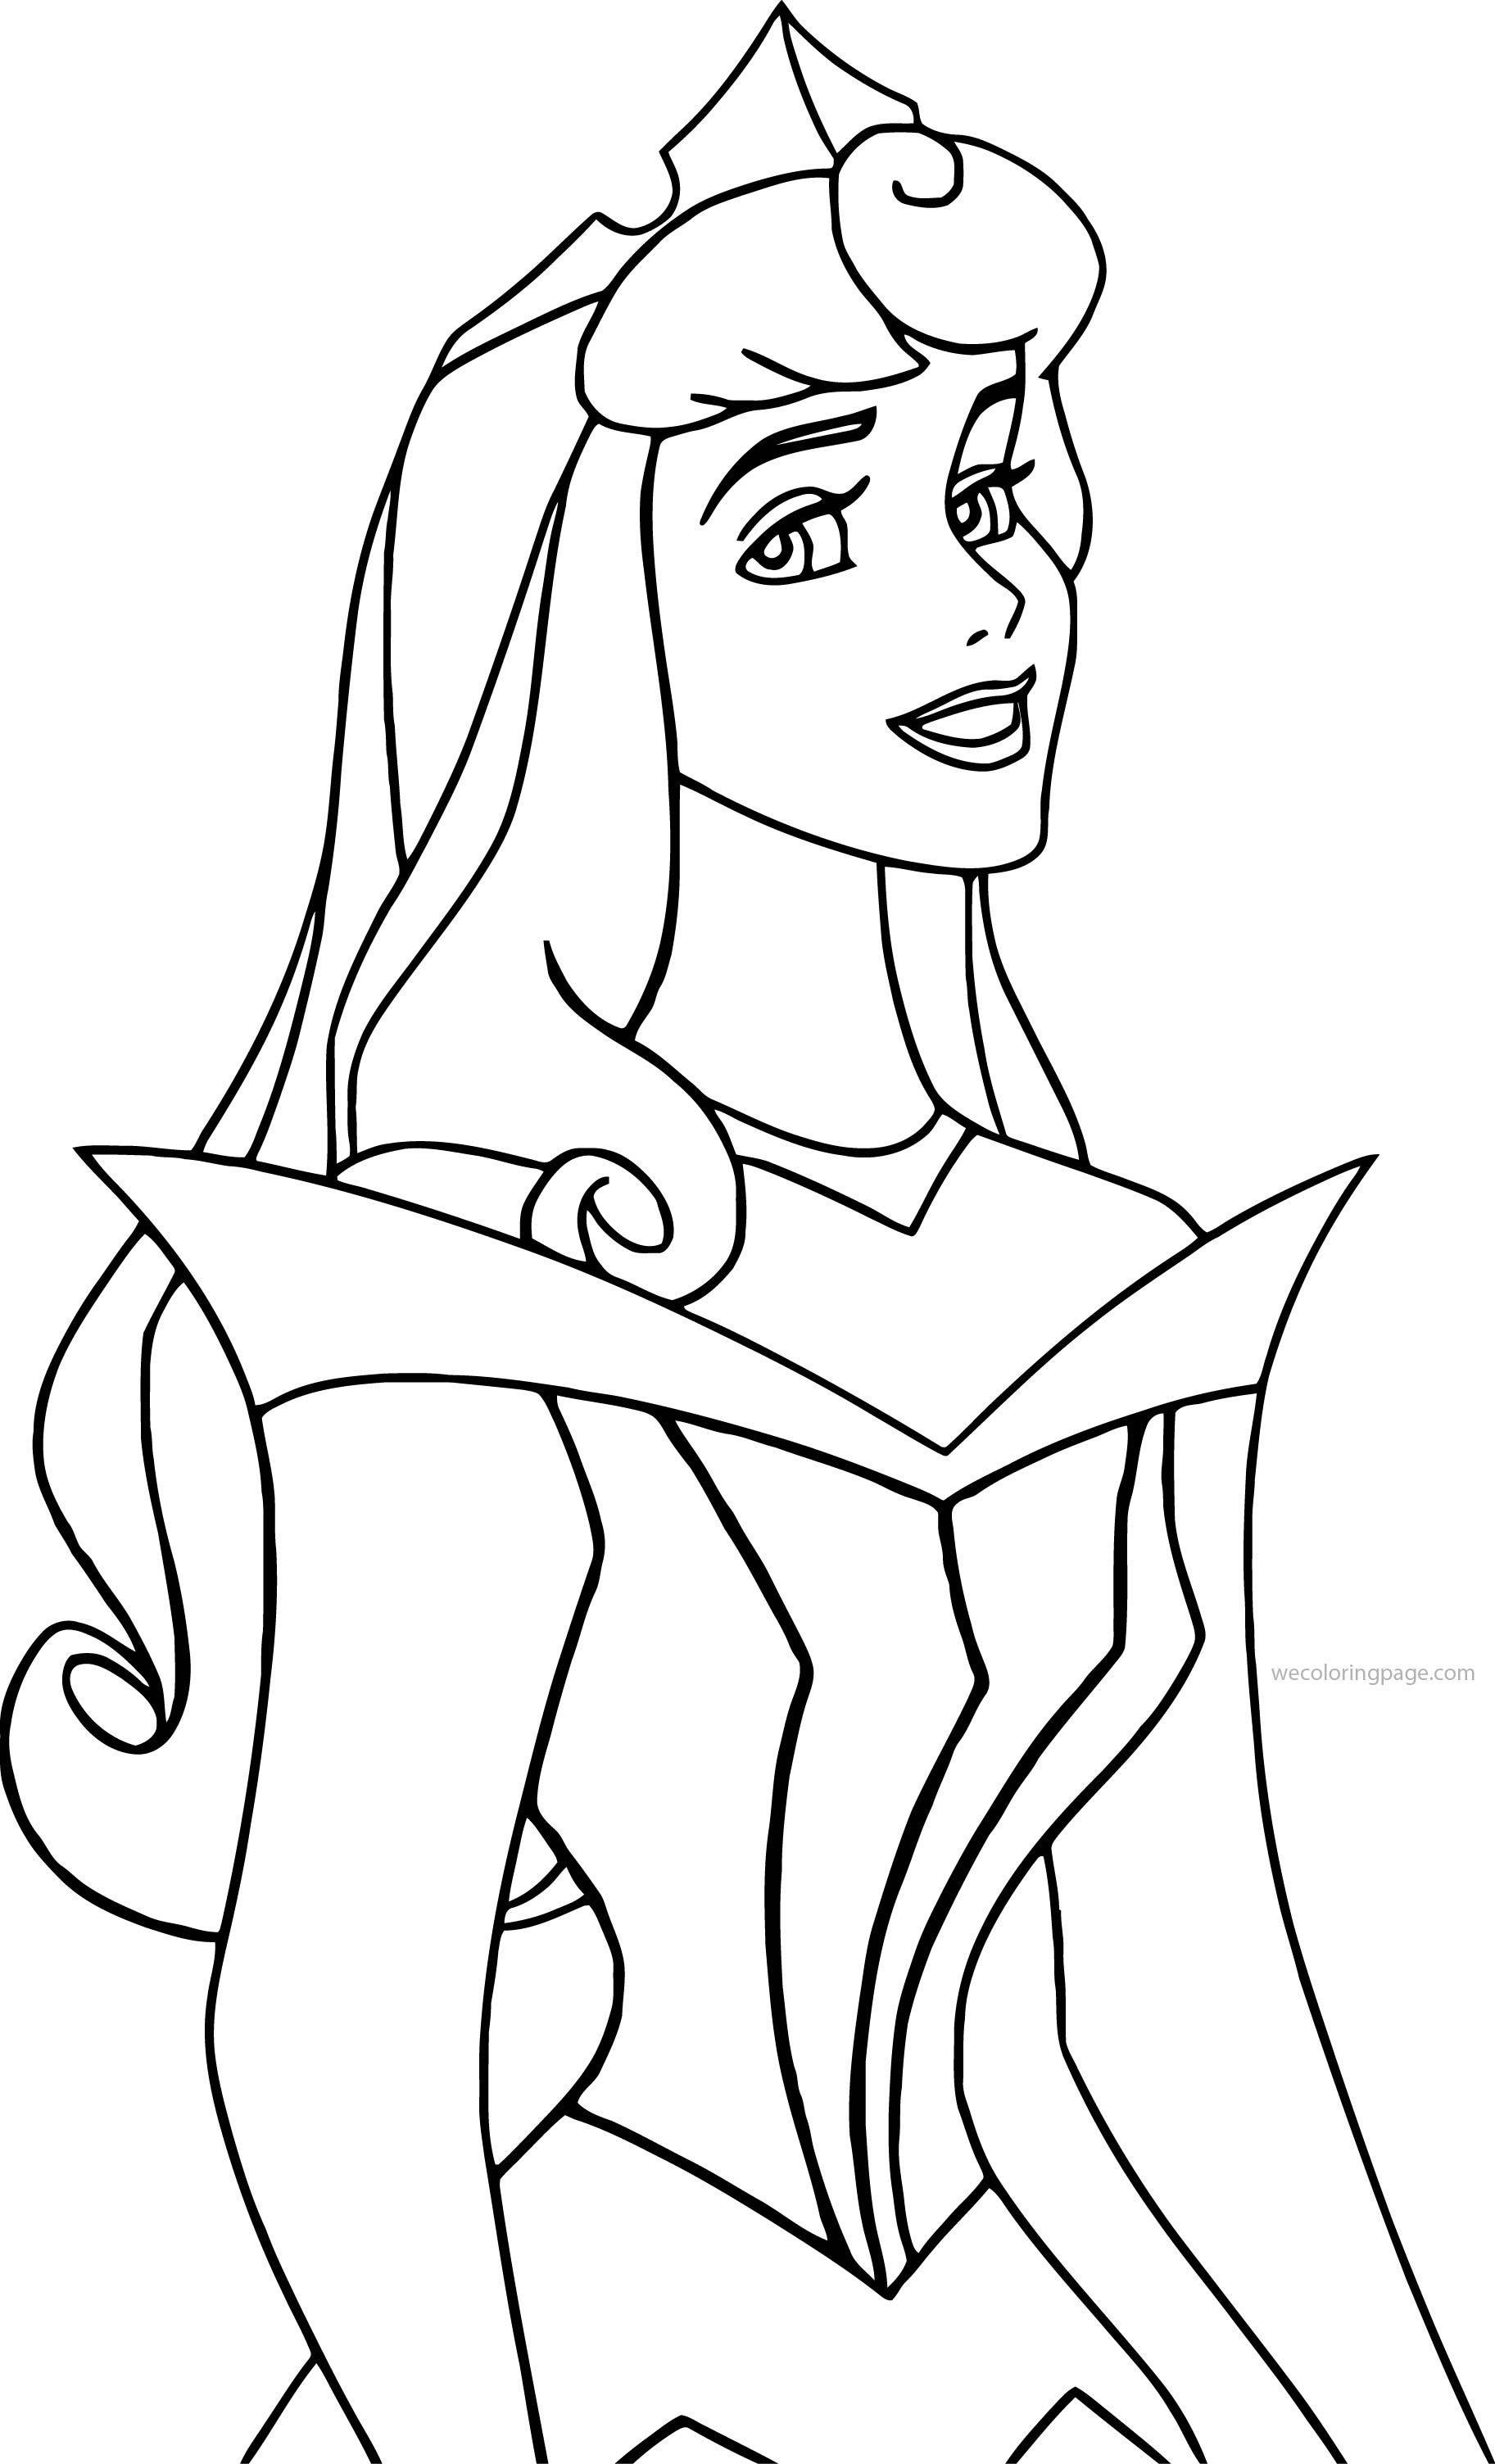 Disney Aurora Regal Sleeping Beauty At Coloring Pages 30